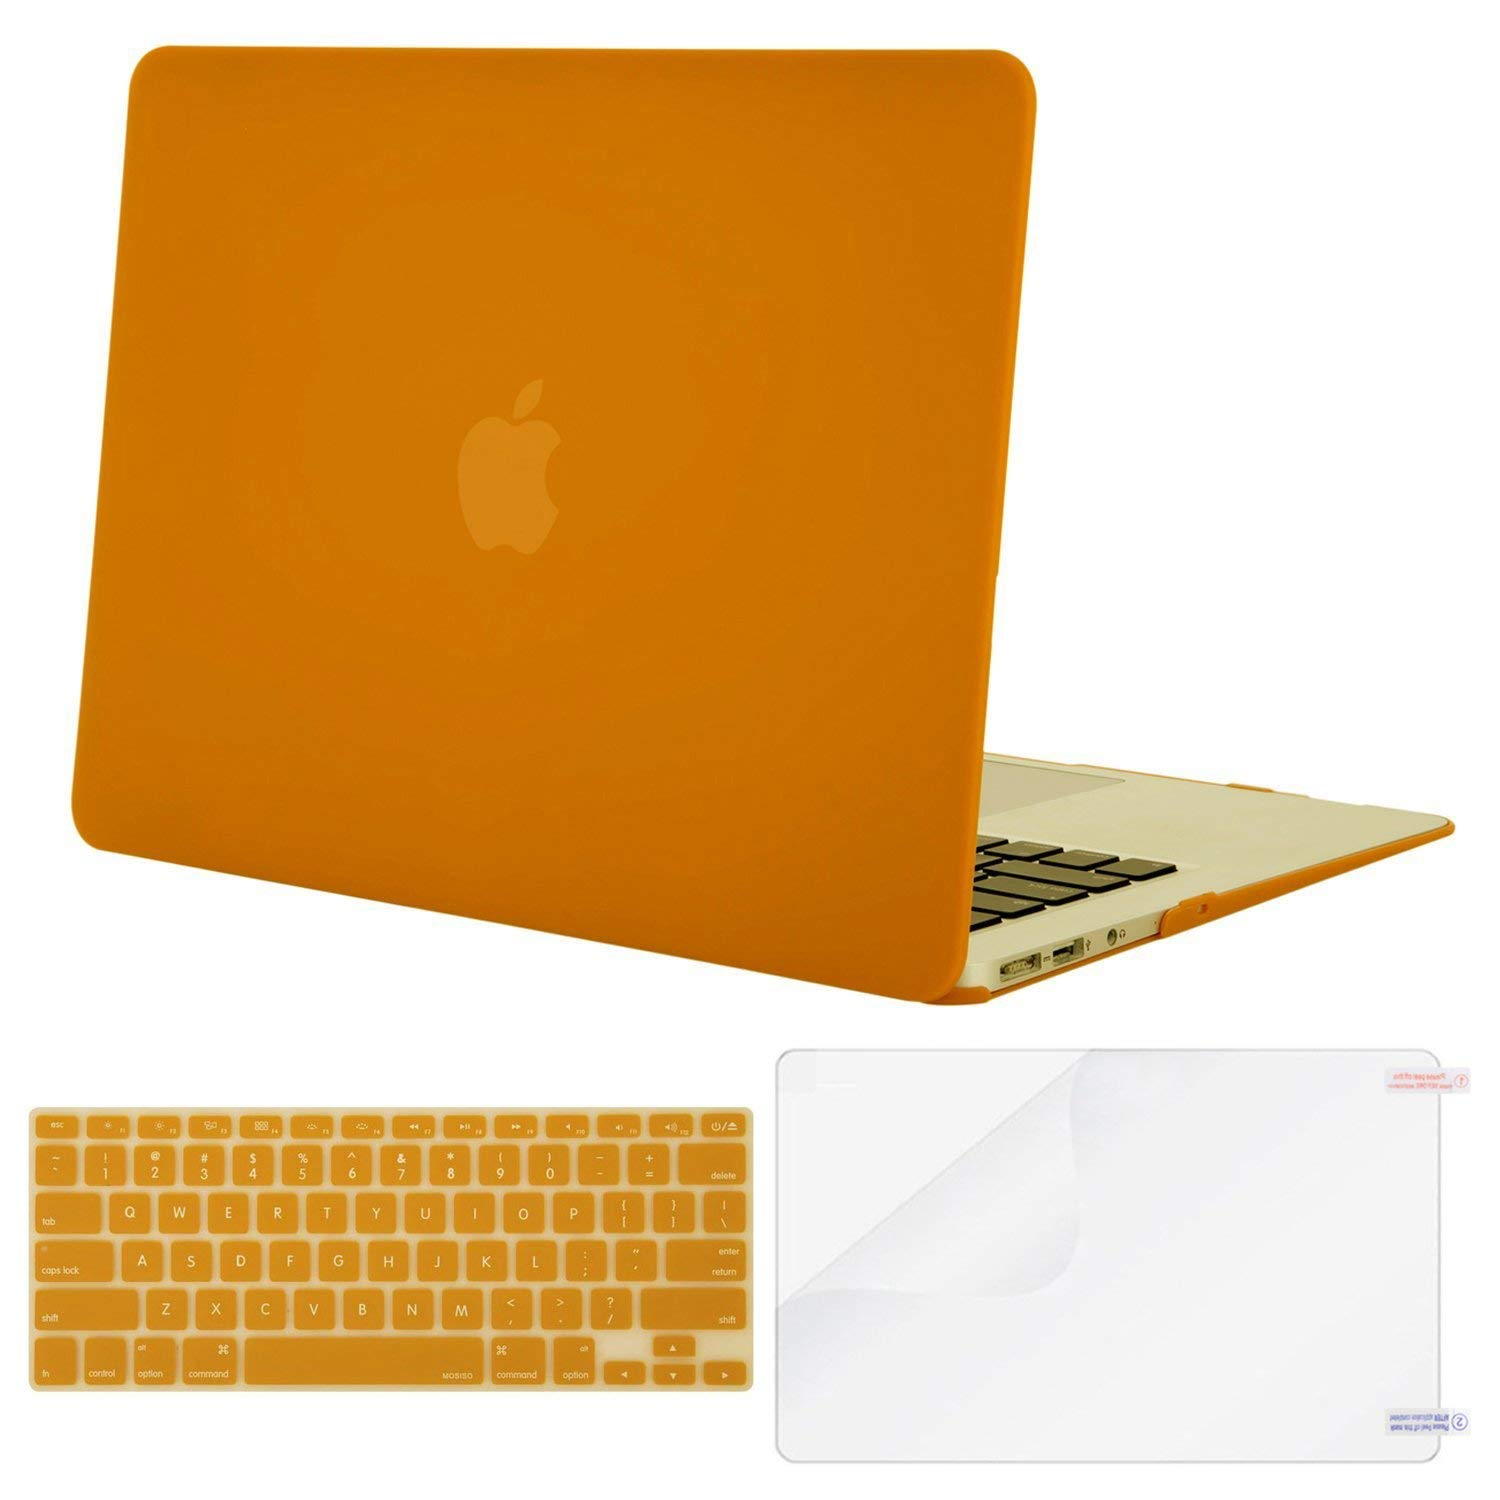 Mosiso Plastic Hard Case with Keyboard Cover with Screen Protector for MacBook Air 13 Inch (Models: A1369 and A1466),Marsala Red